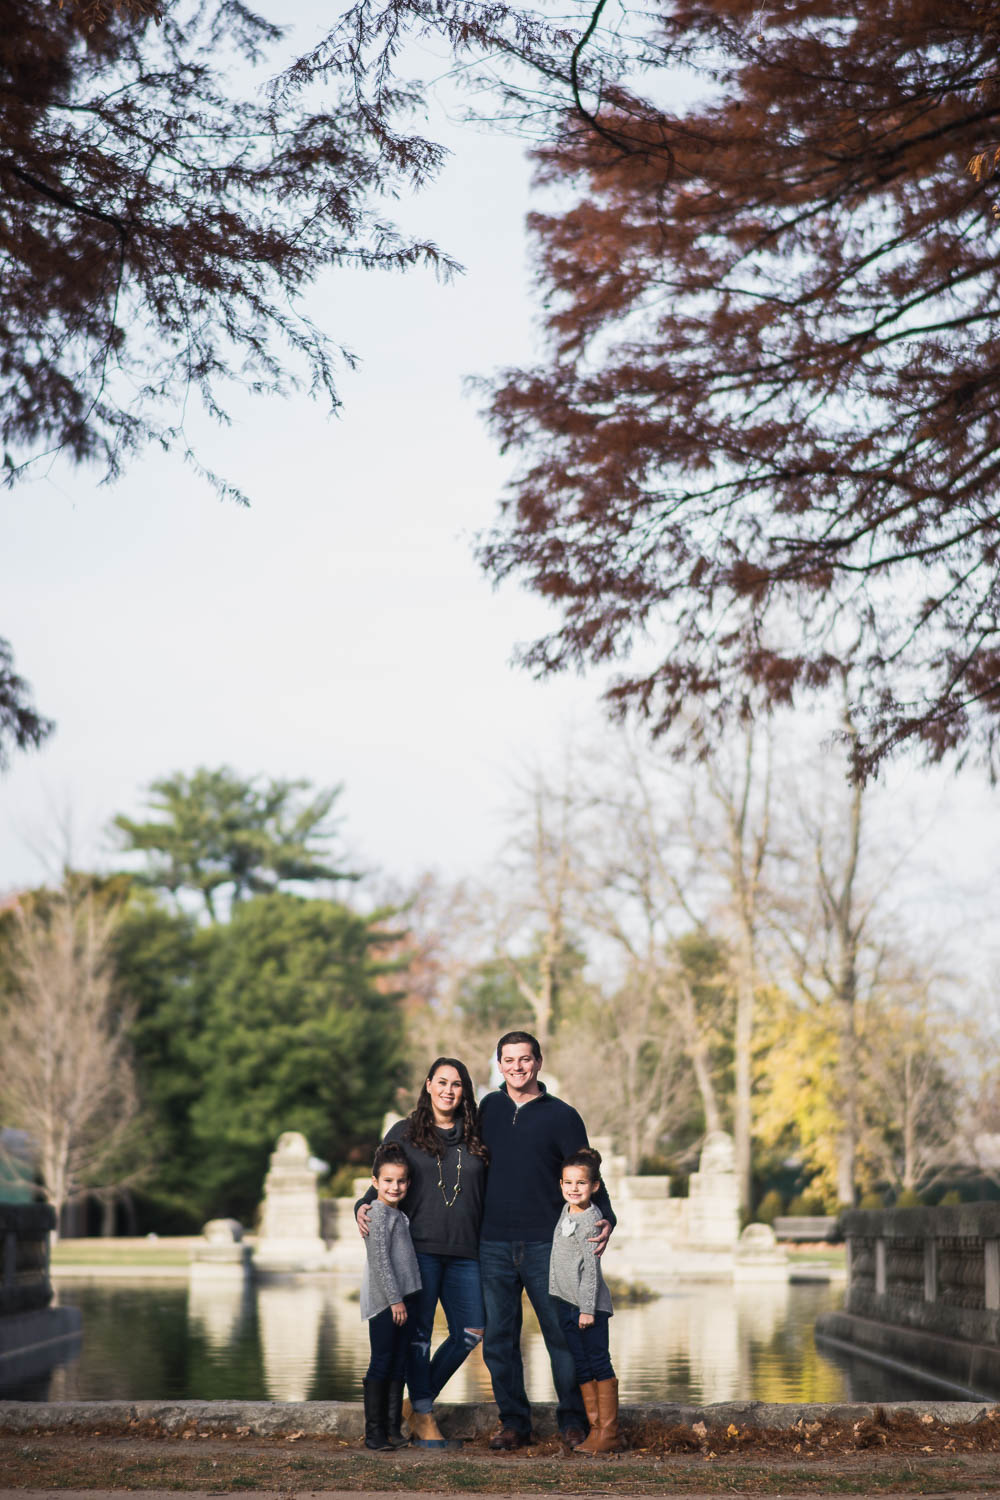 A portrait of a family at Tower Grove Park.